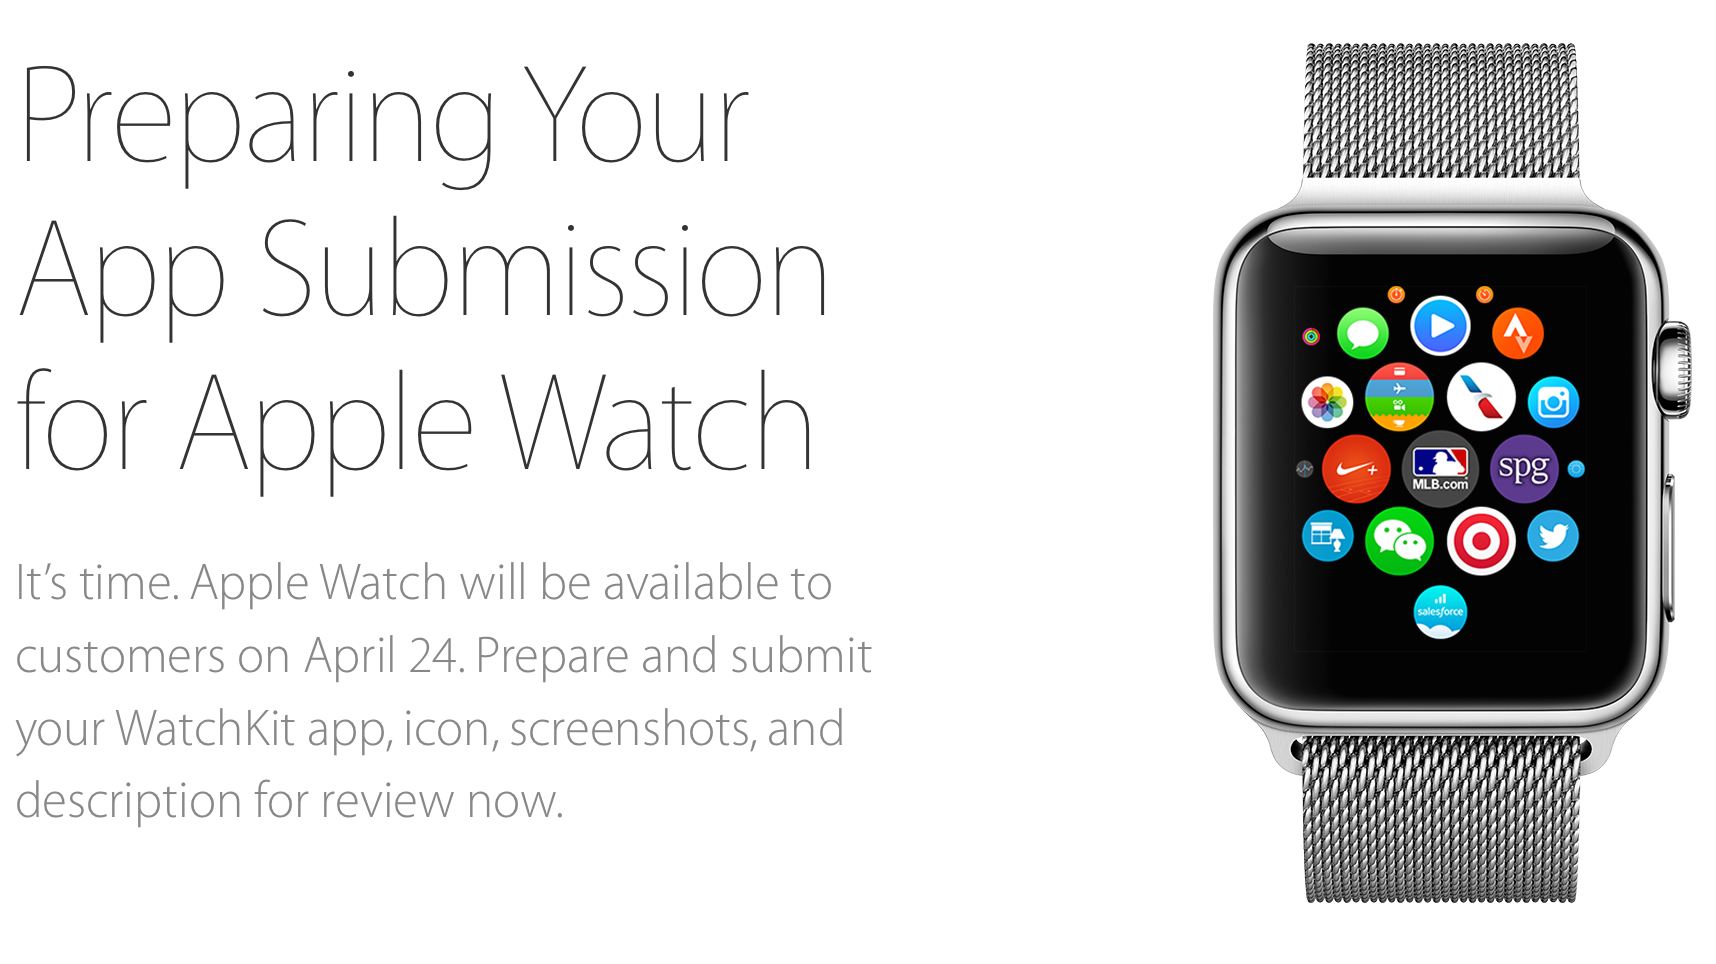 Preparing Your App Submission for Apple Watch